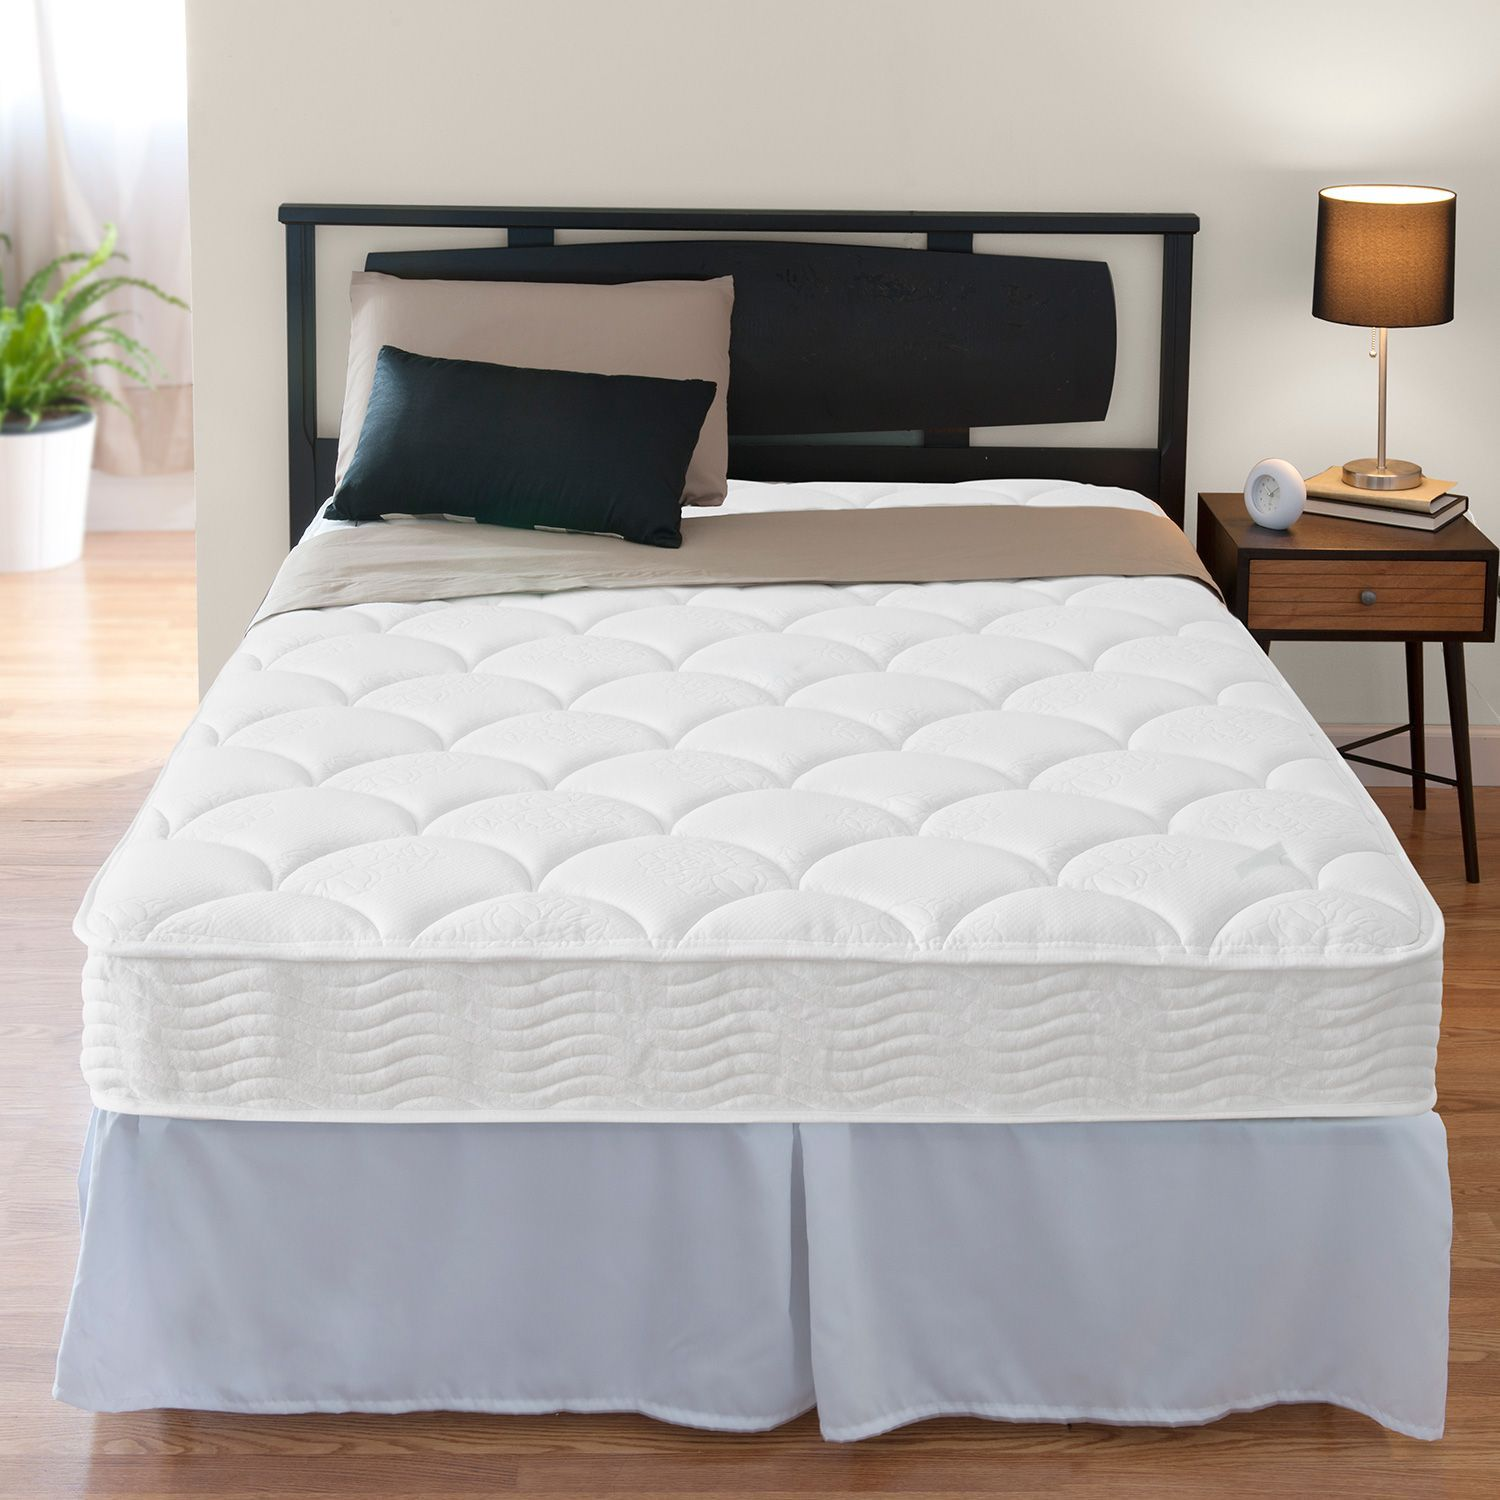 Zinus Night Therapy Icoil 8 Spring Full Mattress And Smartbase